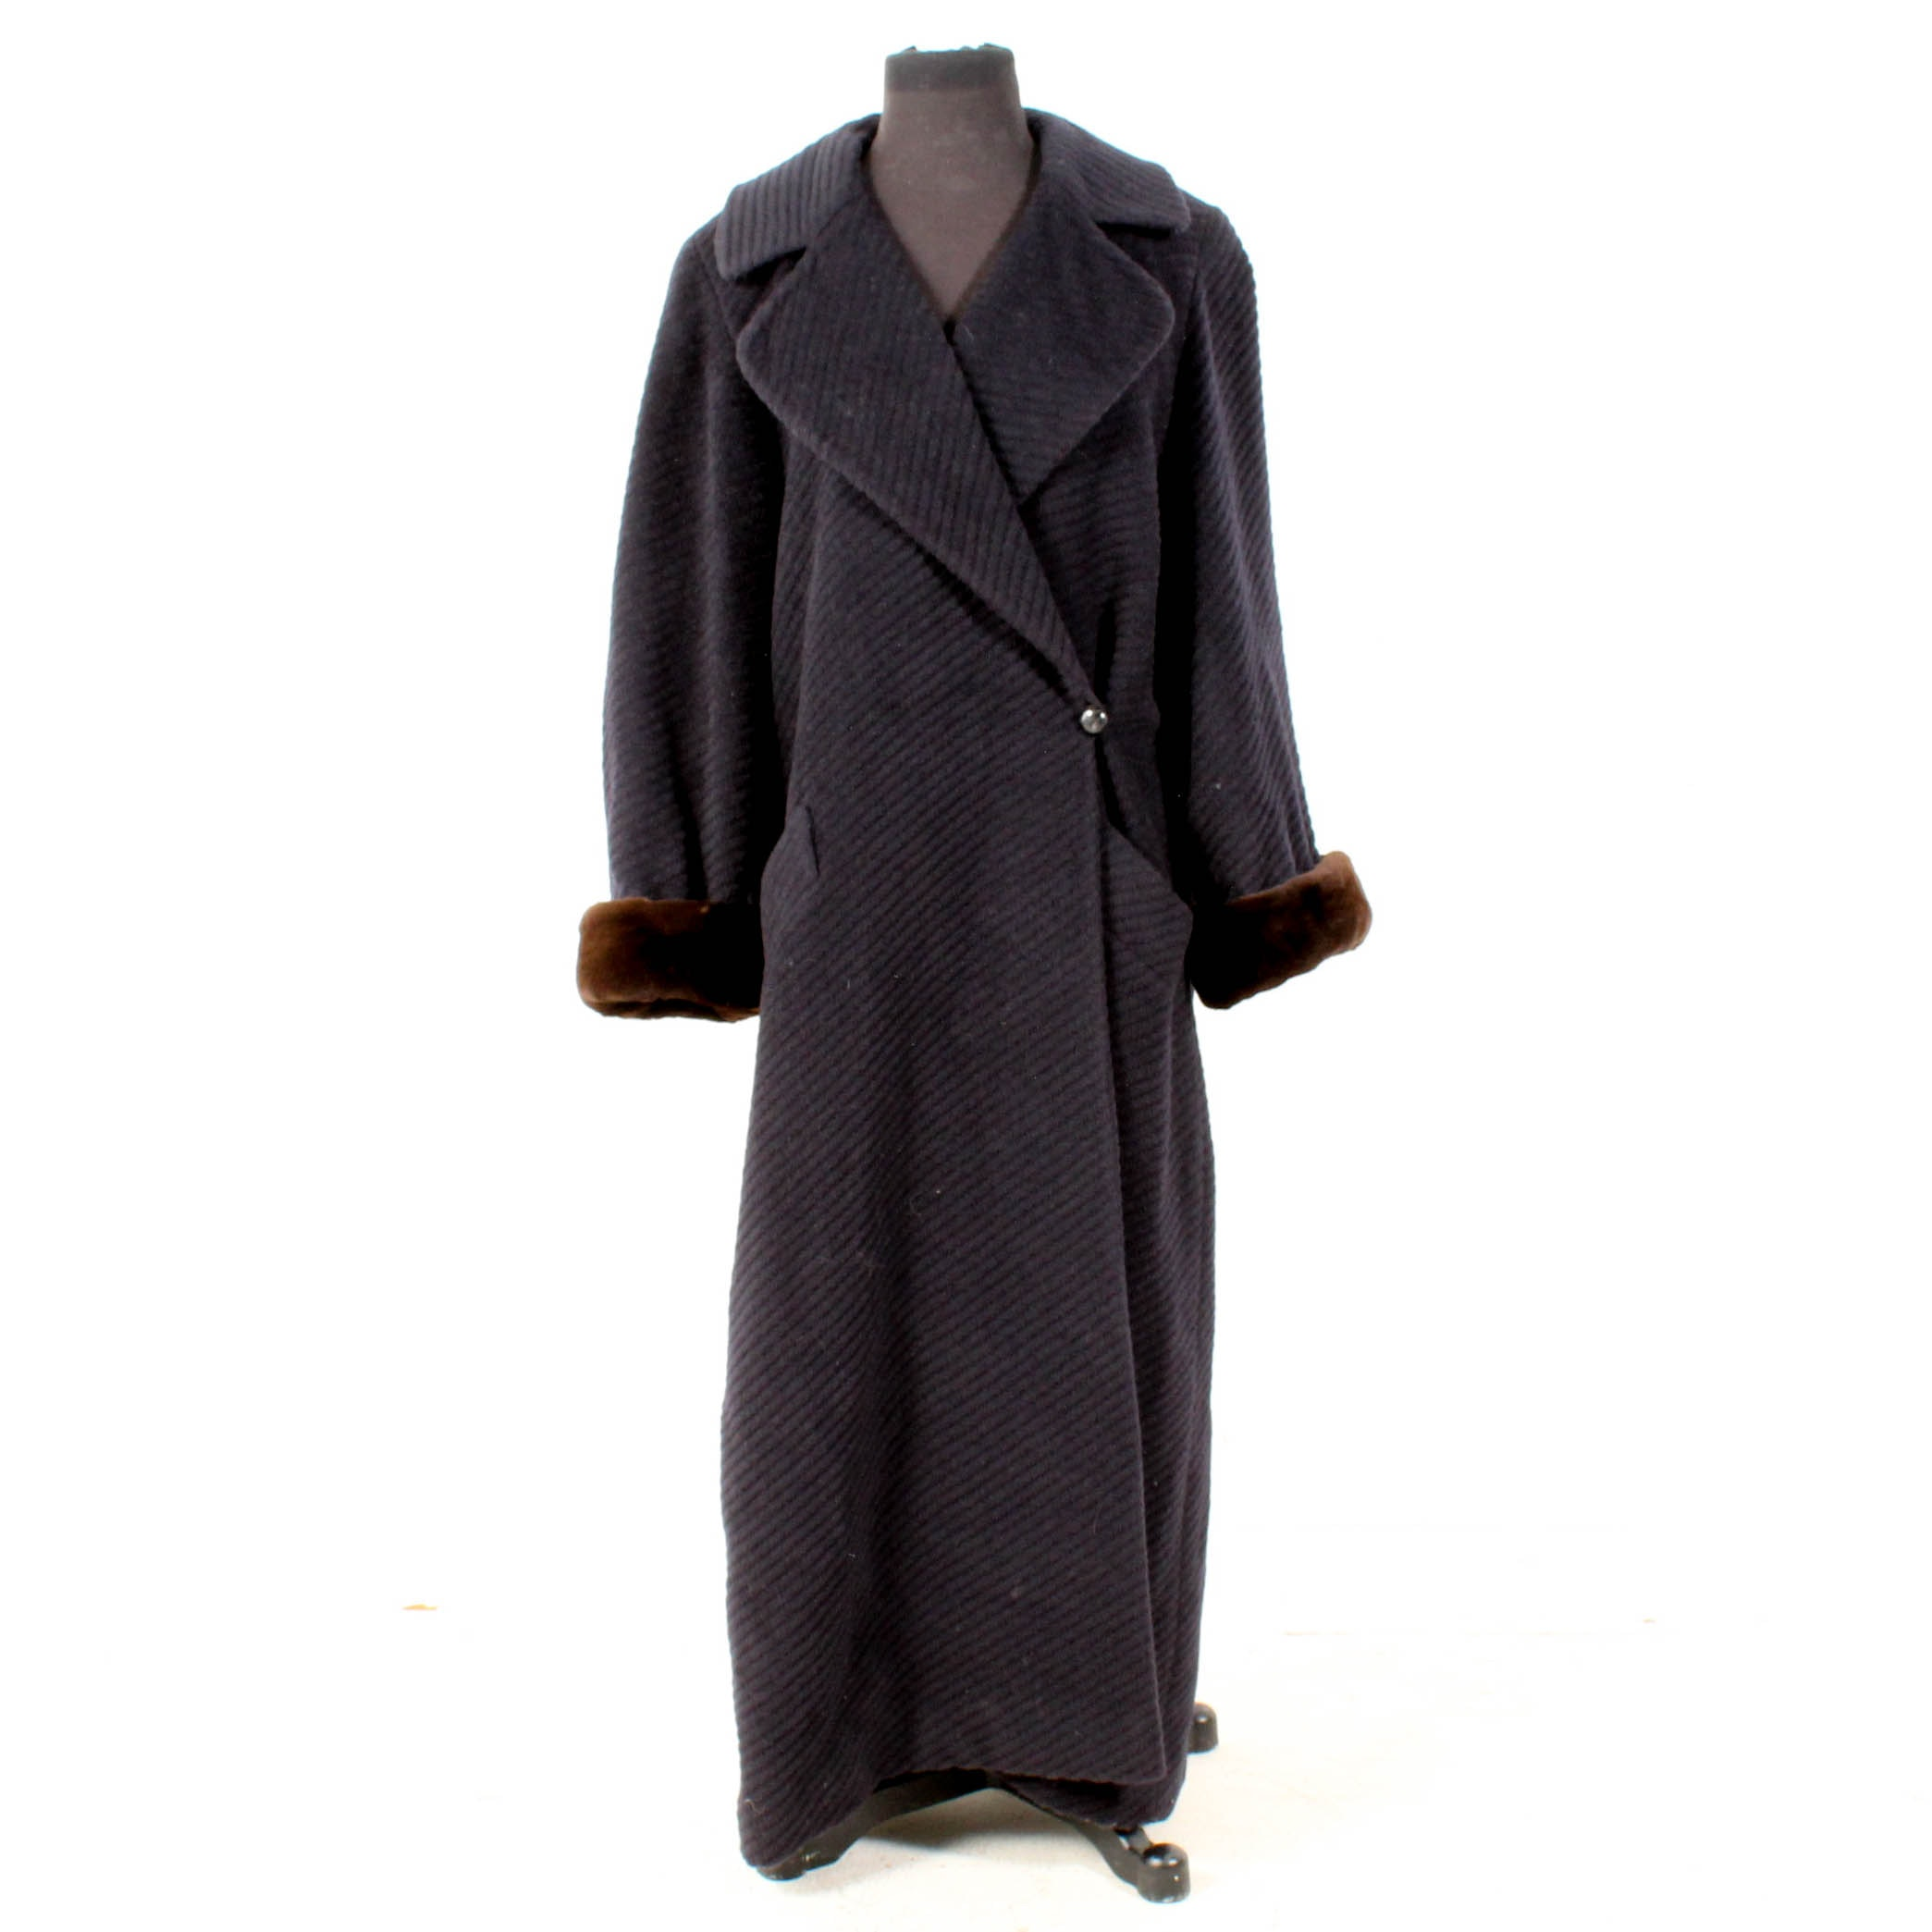 Louis Dell'Olio Luxe Wool Coat with Sheared Mink Fur Cuffs